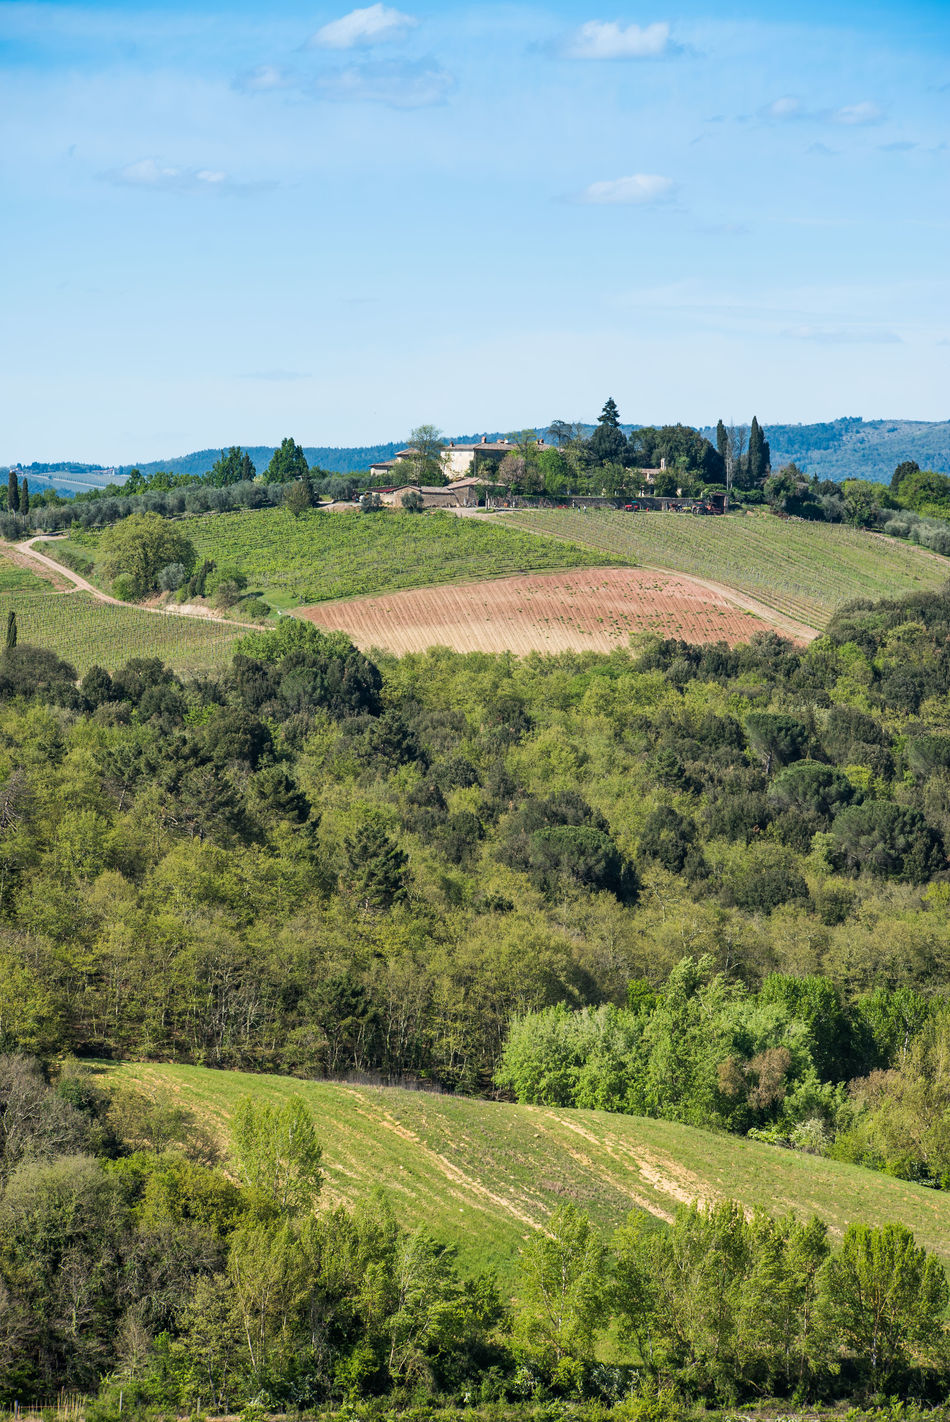 Agriculture Beauty In Nature Cloud - Sky Crop  Day Farm Field Green Color Growth Landscape Nature No People Outdoors Rural Rural Scene Scenics Siena Sky Tranquil Scene Tree Tuscany Val D'orcia Wine Winemaking Winery